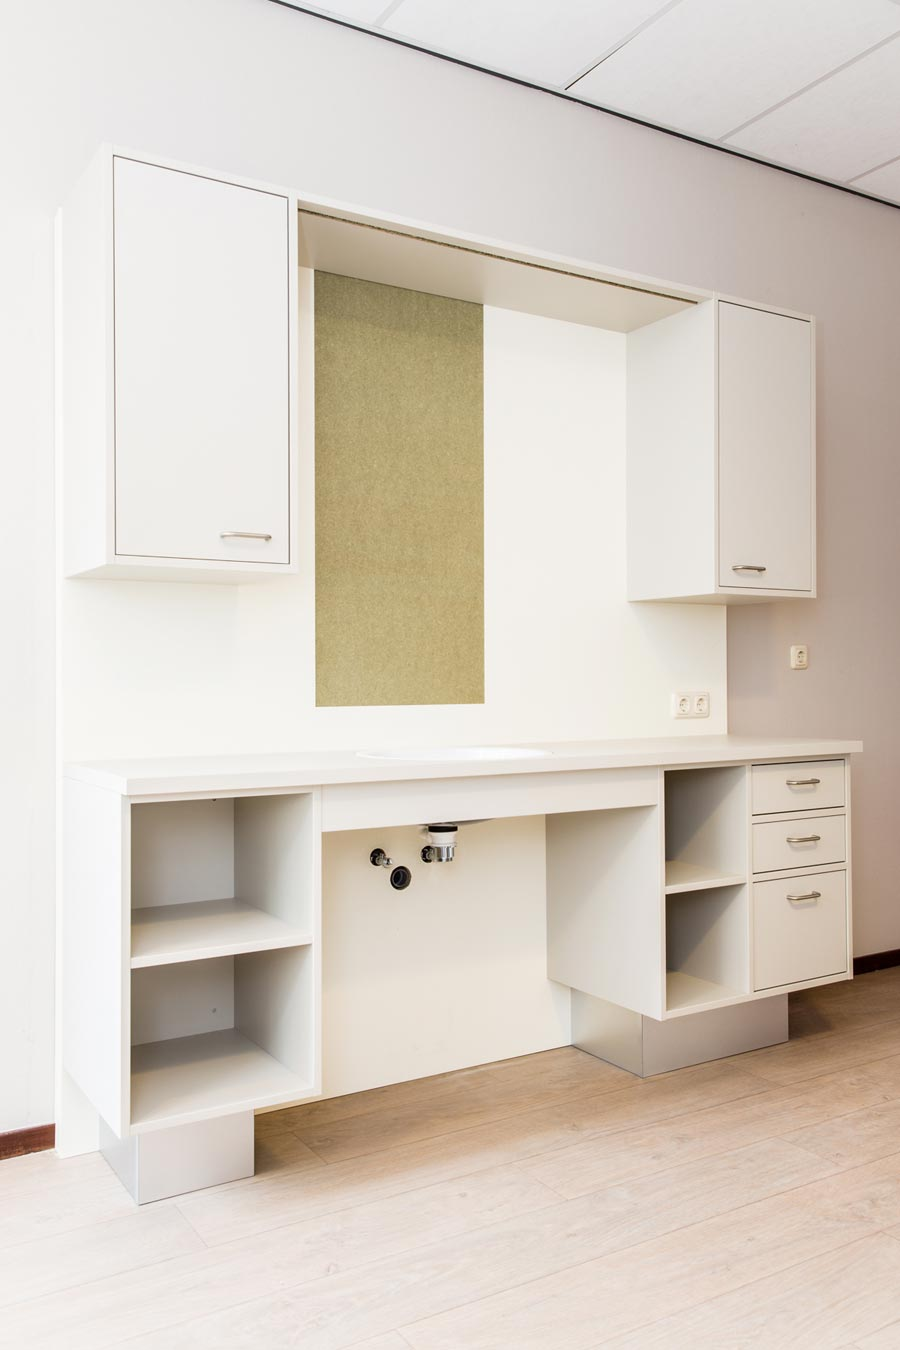 Zorg interieur project Marga Klope 4